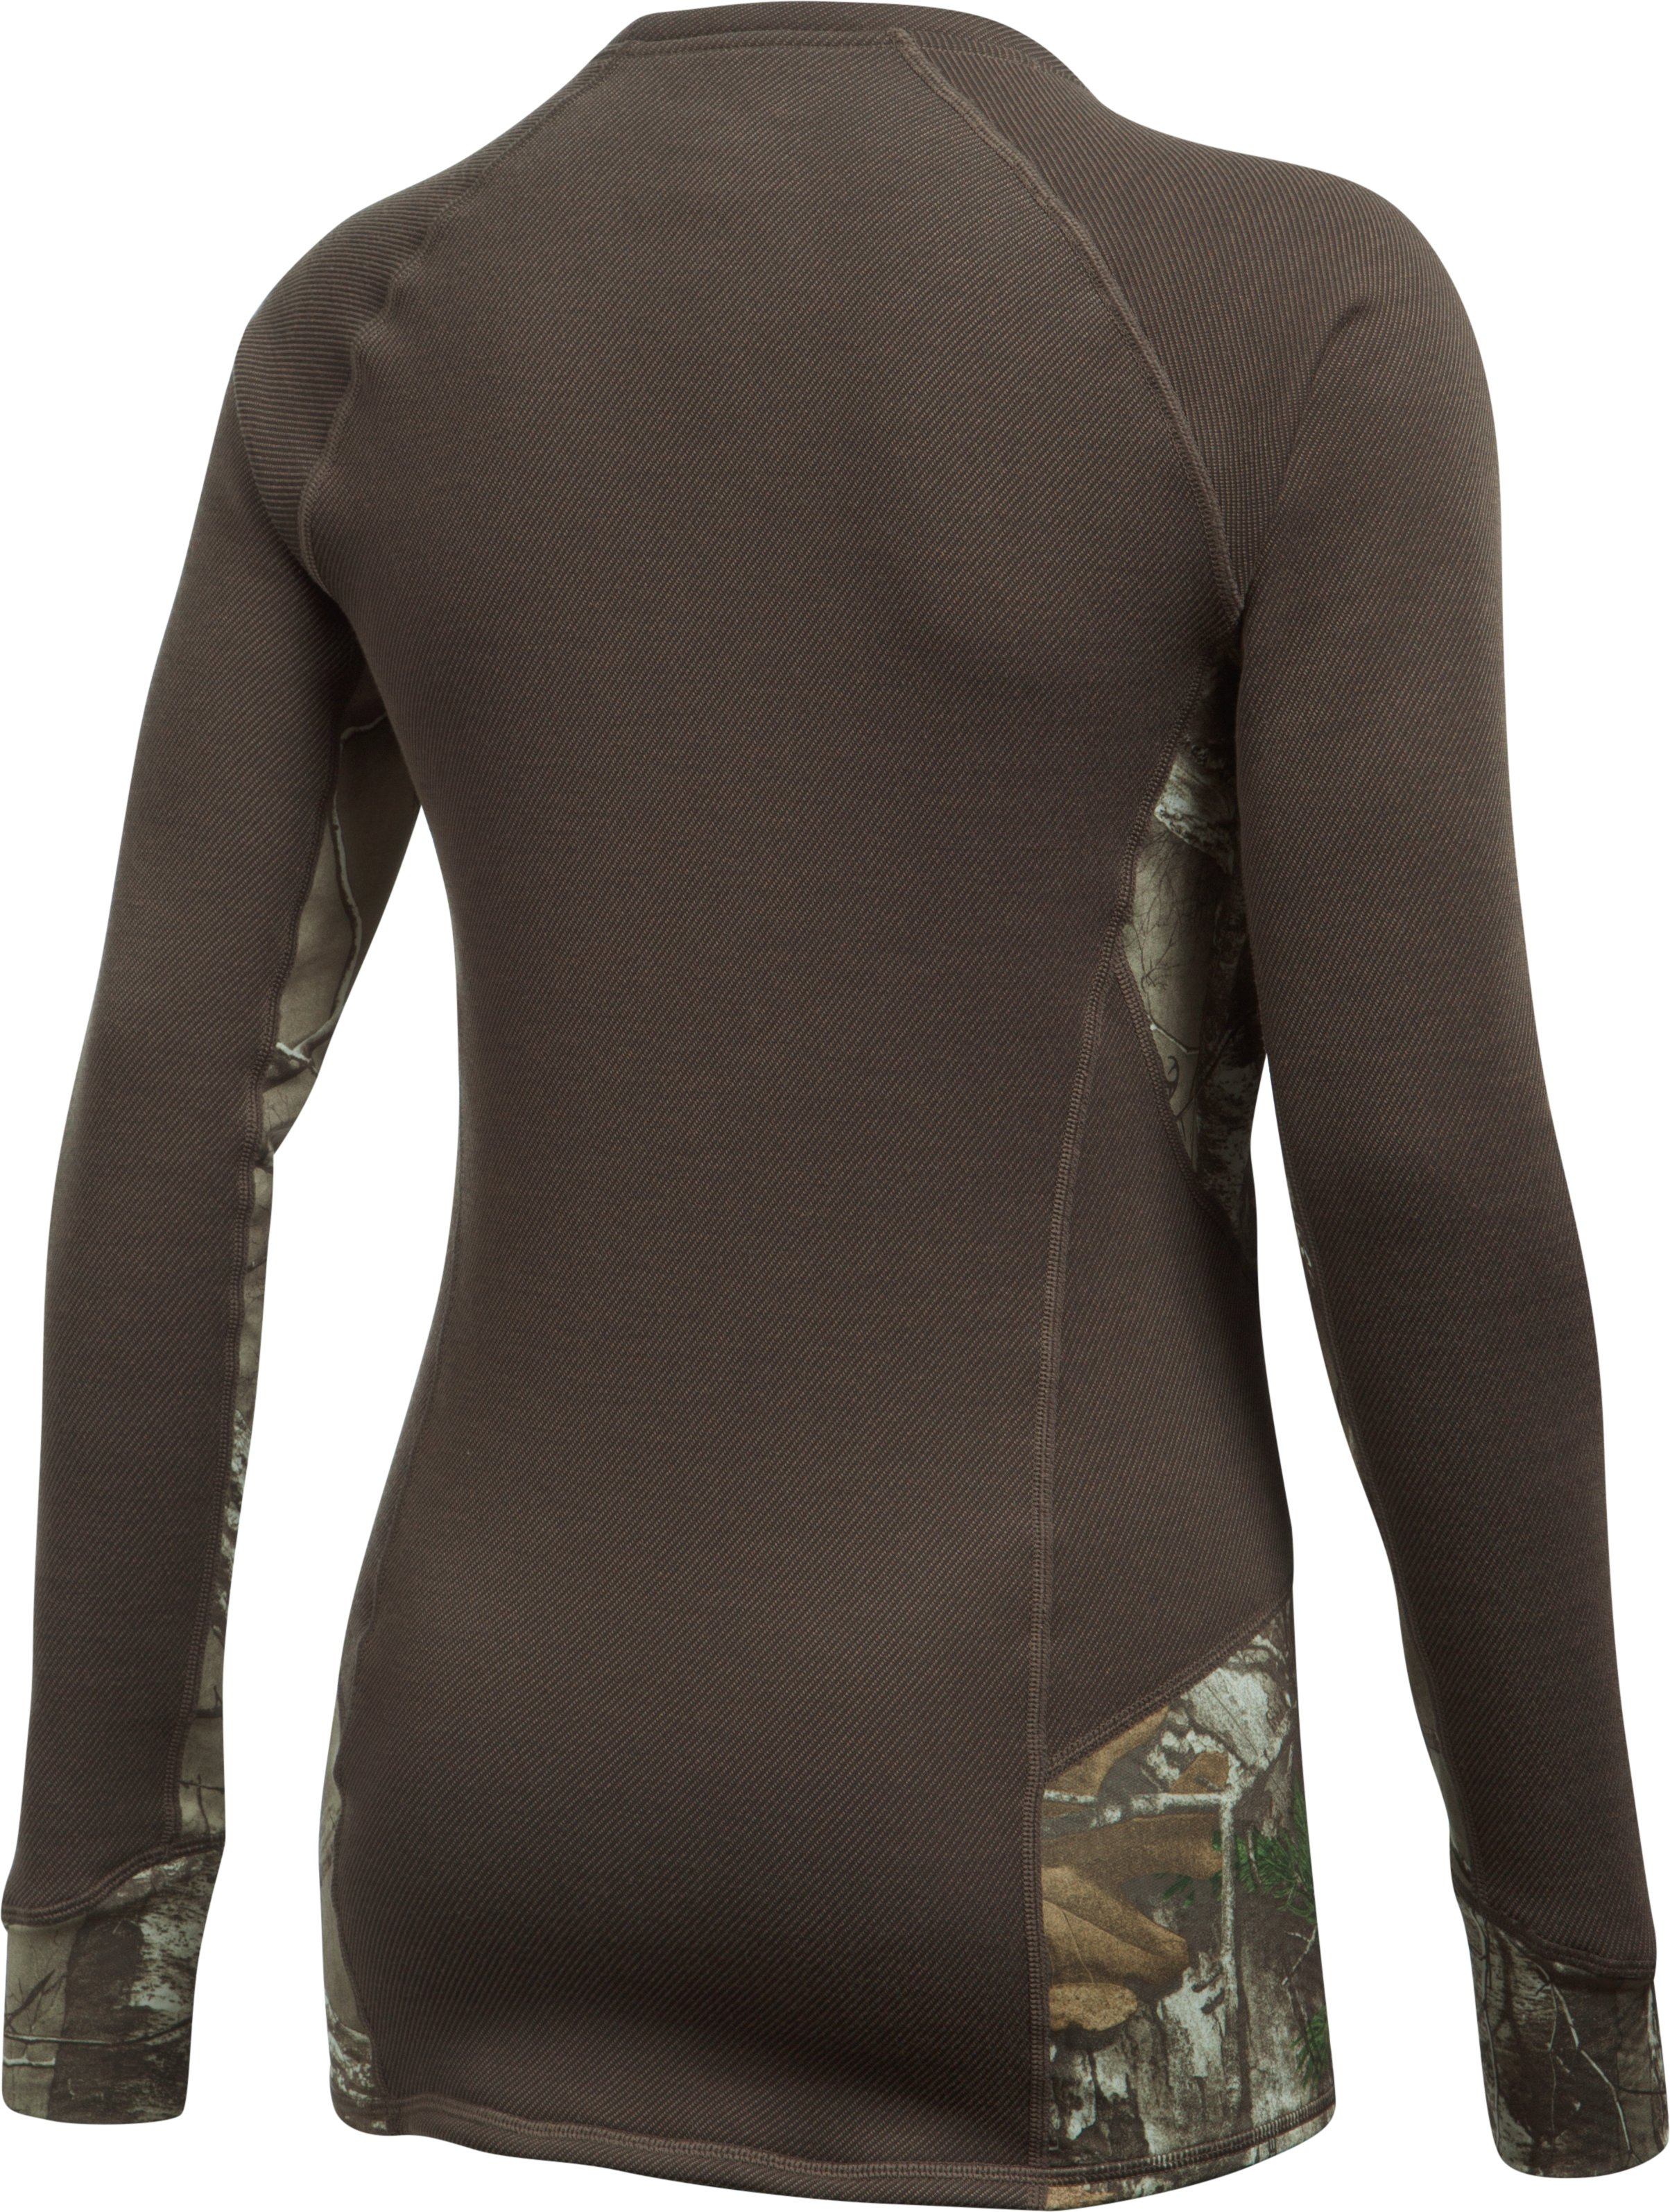 Women's UA Extreme Base Long Sleeve, MAVERICK BROWN